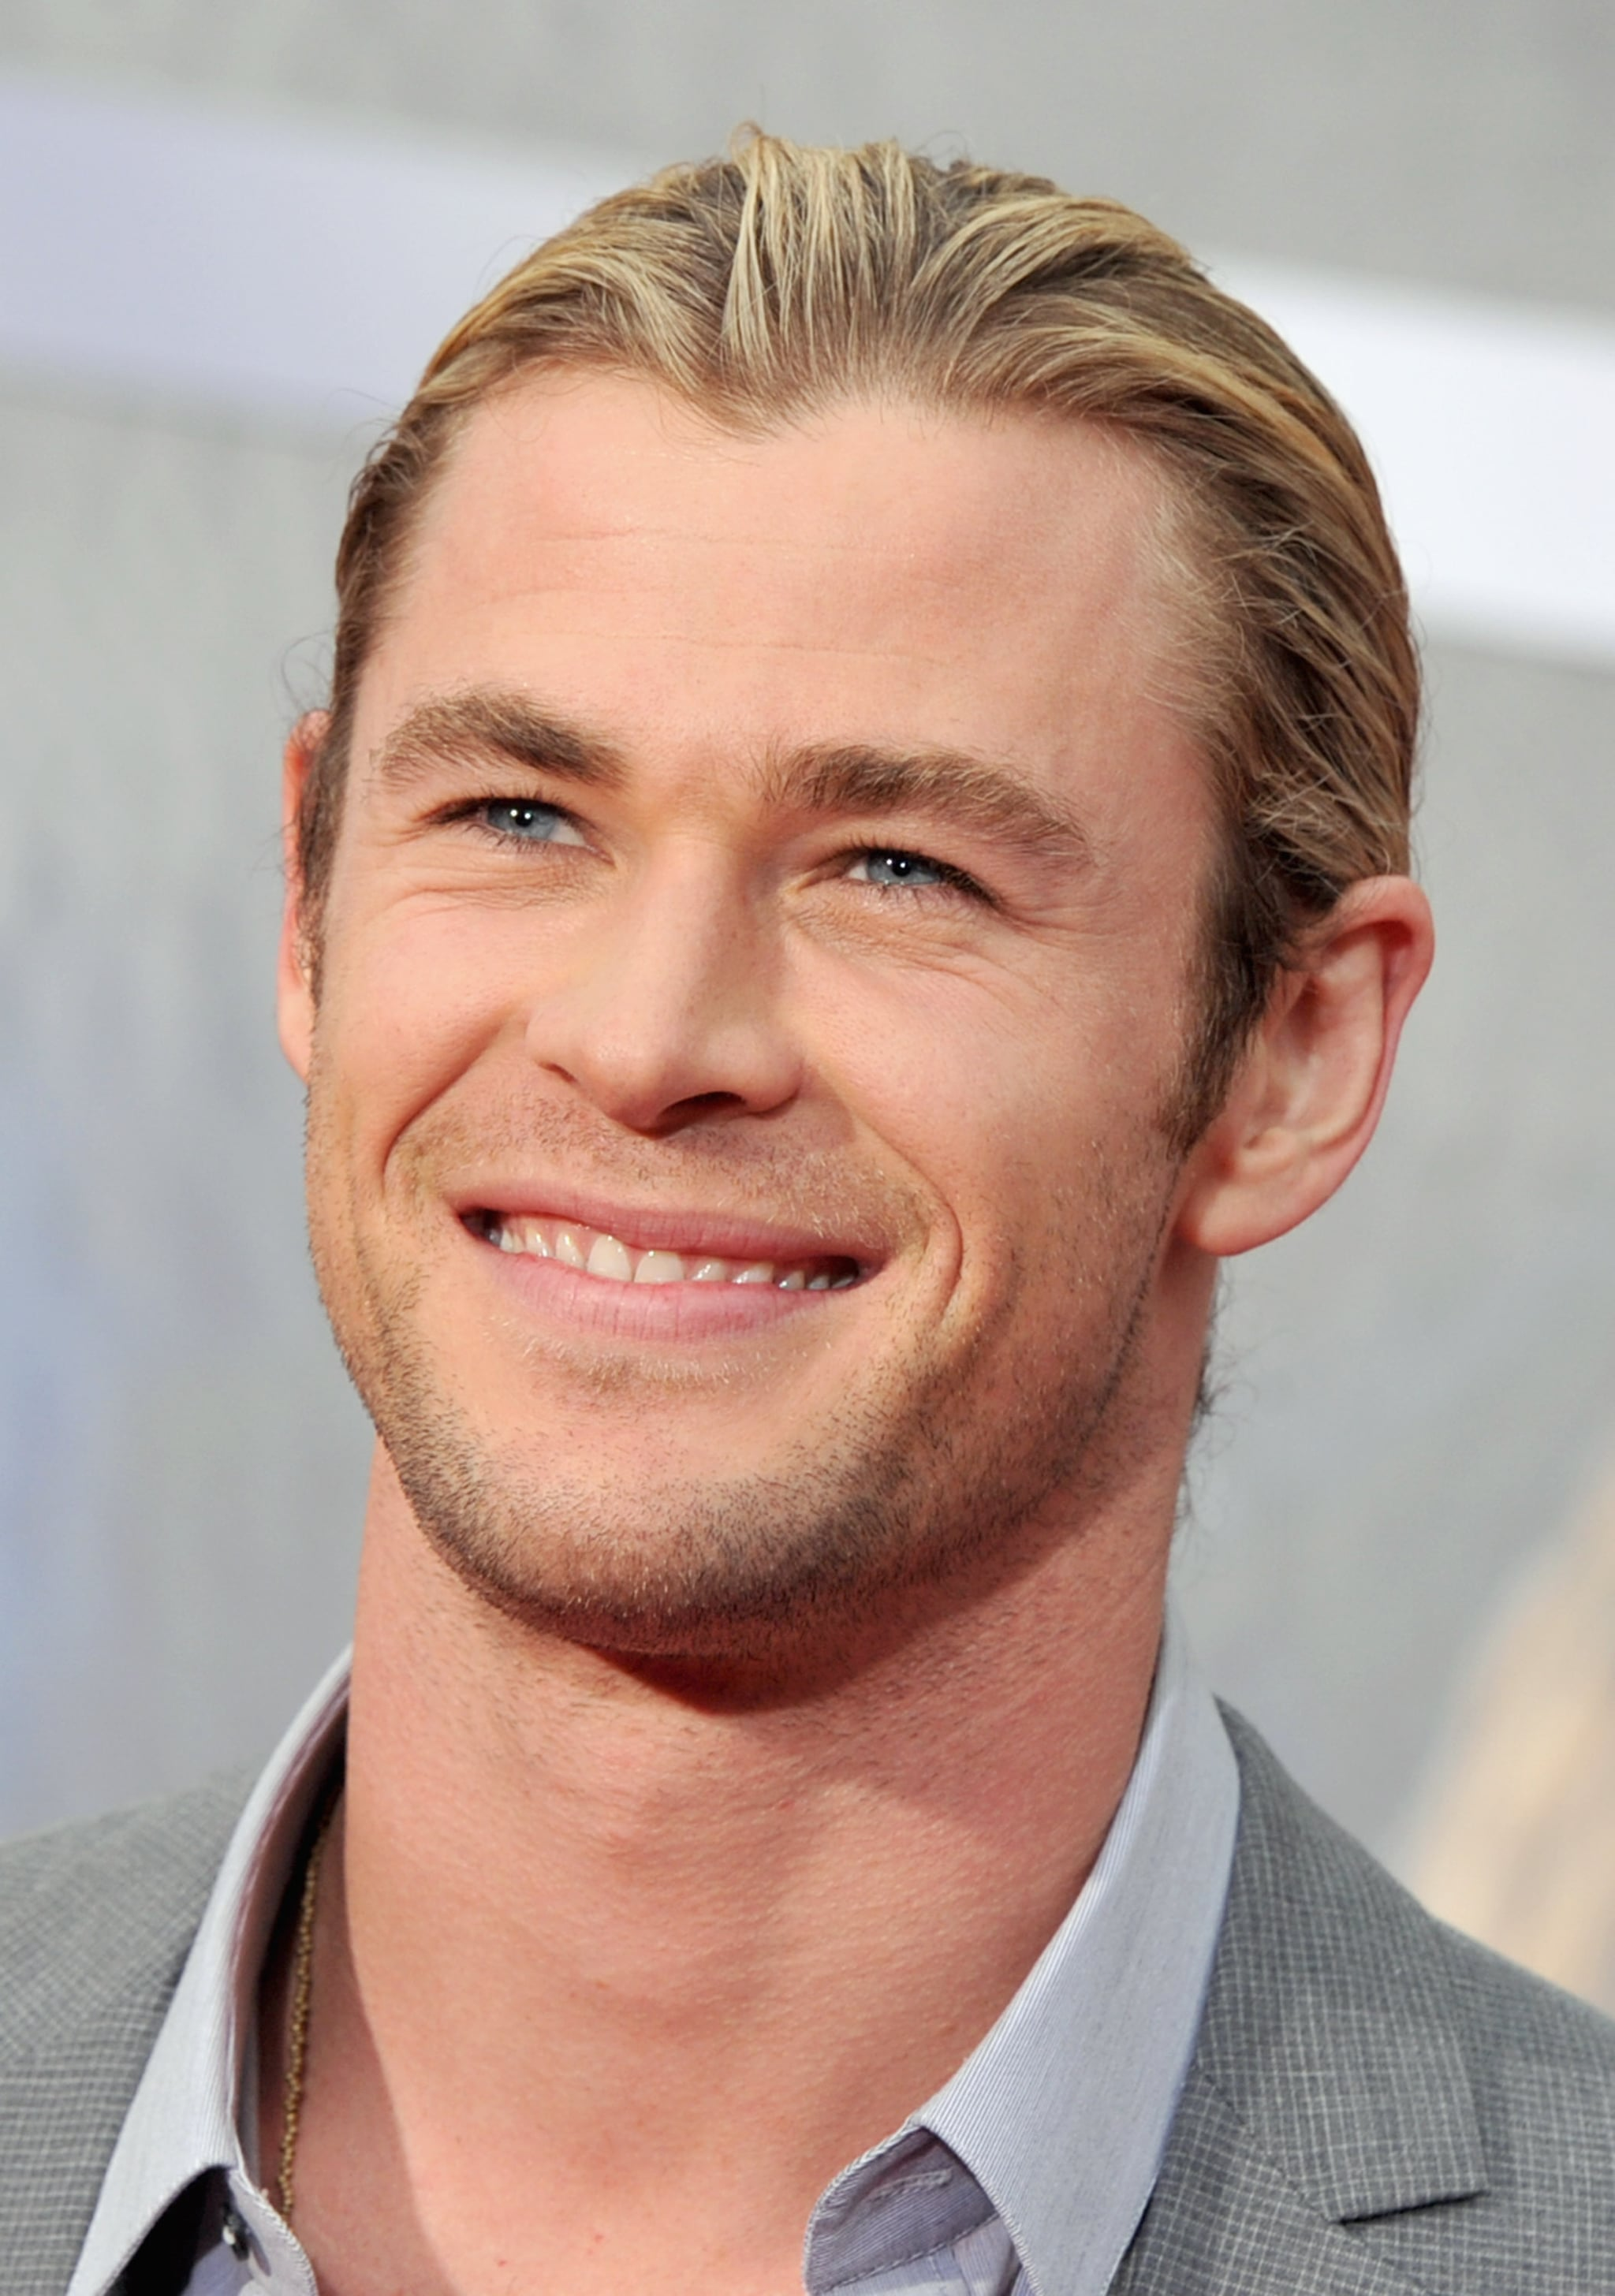 Chris Hemsworth Gushes About Liam, but Stays on Team Avengers at the World Premiere